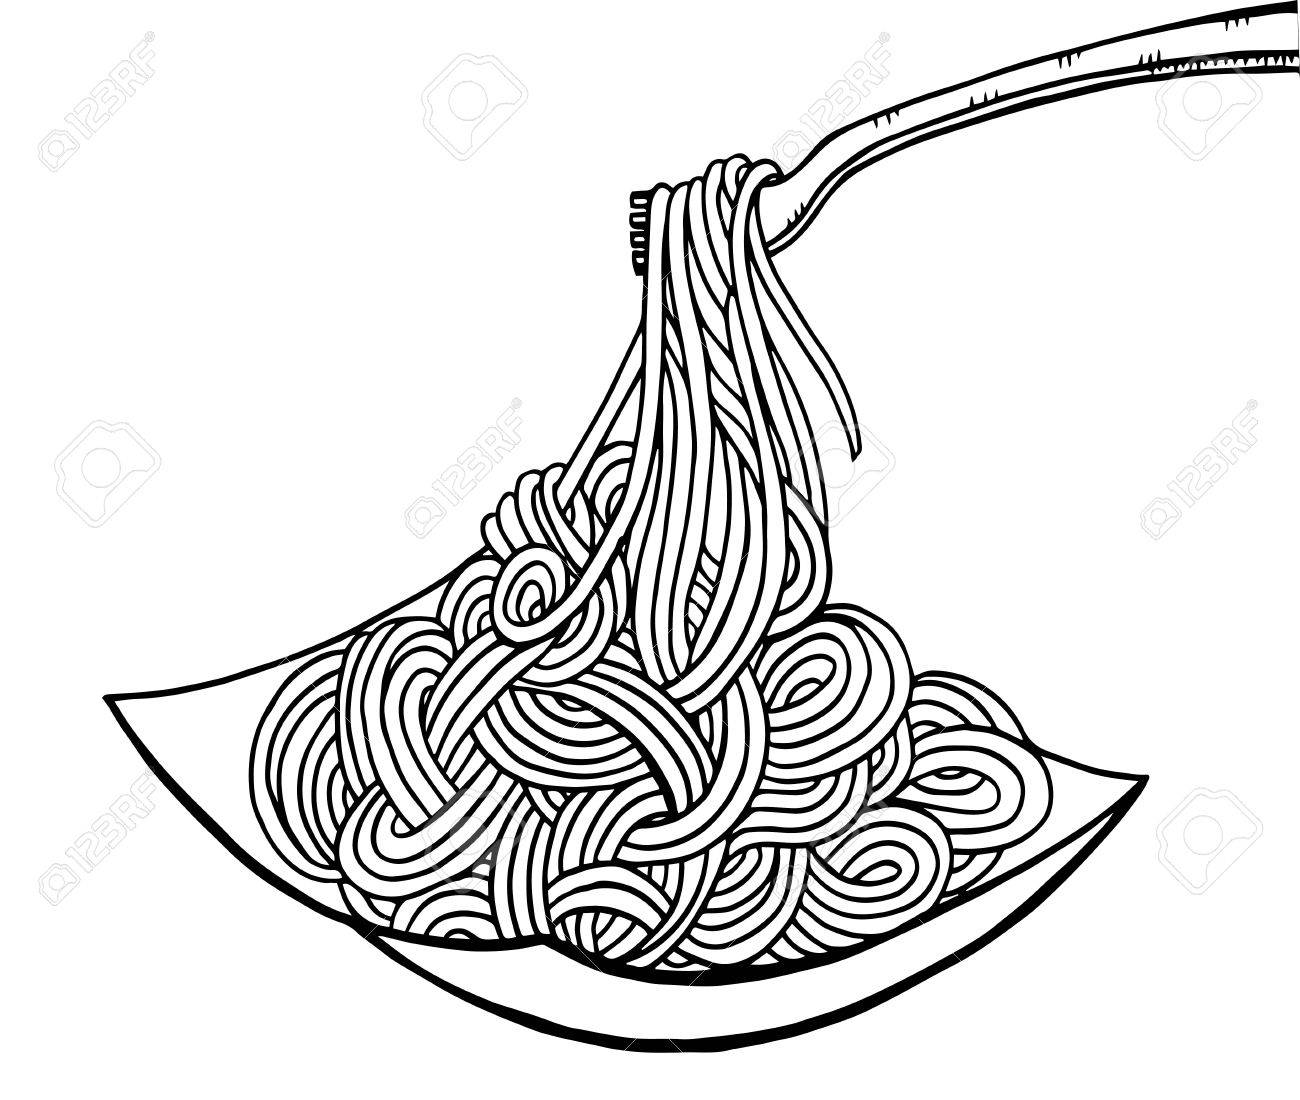 1300x1100 Doodle Noodle At Plate And Fork. Hand Drawing Royalty Free